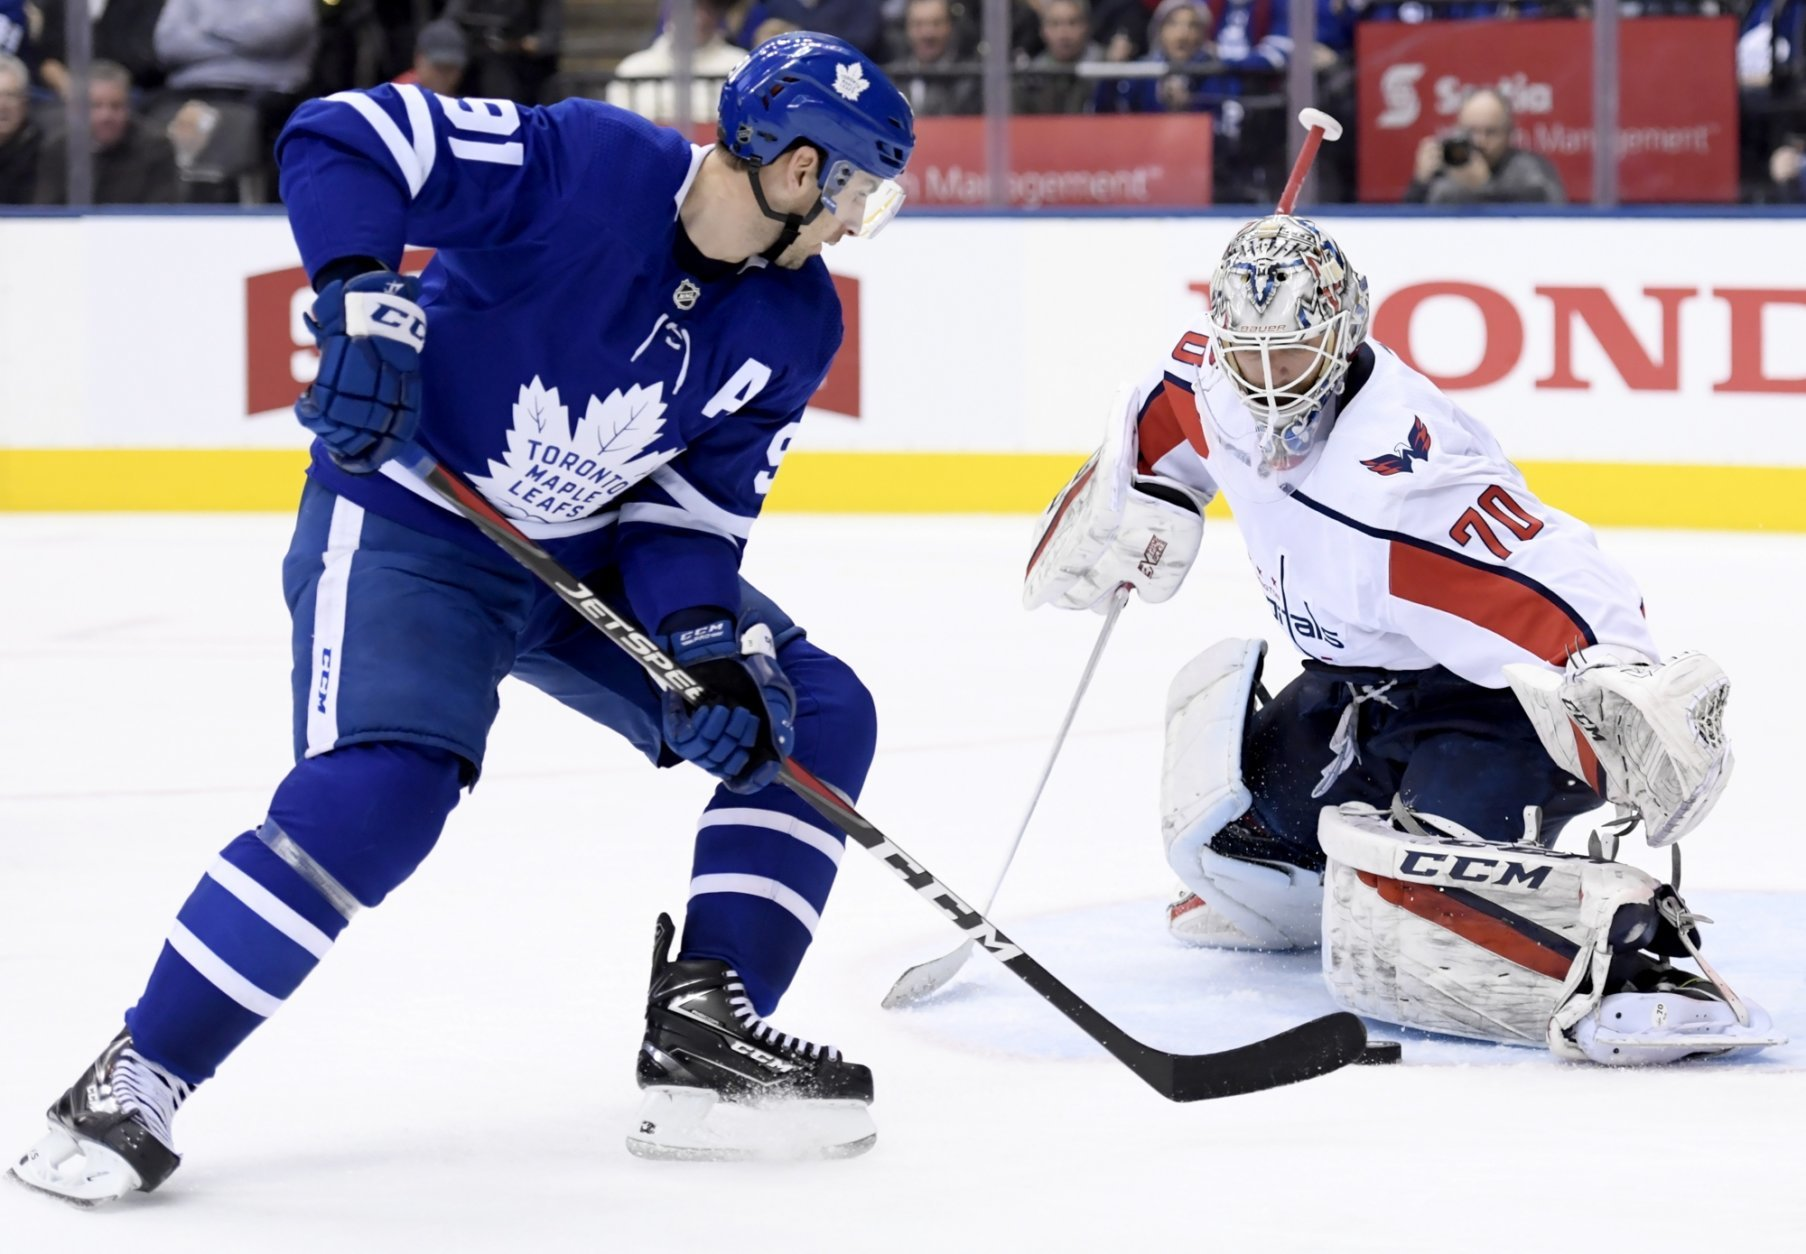 Washington Capitals goaltender Braden Holtby (70) stops Toronto Maple Leafs center John Tavares (91) during the second period of an NHL hockey game, Wednesday, Jan. 23, 2019, in Toronto. (Nathan Denette/The Canadian Press via AP)